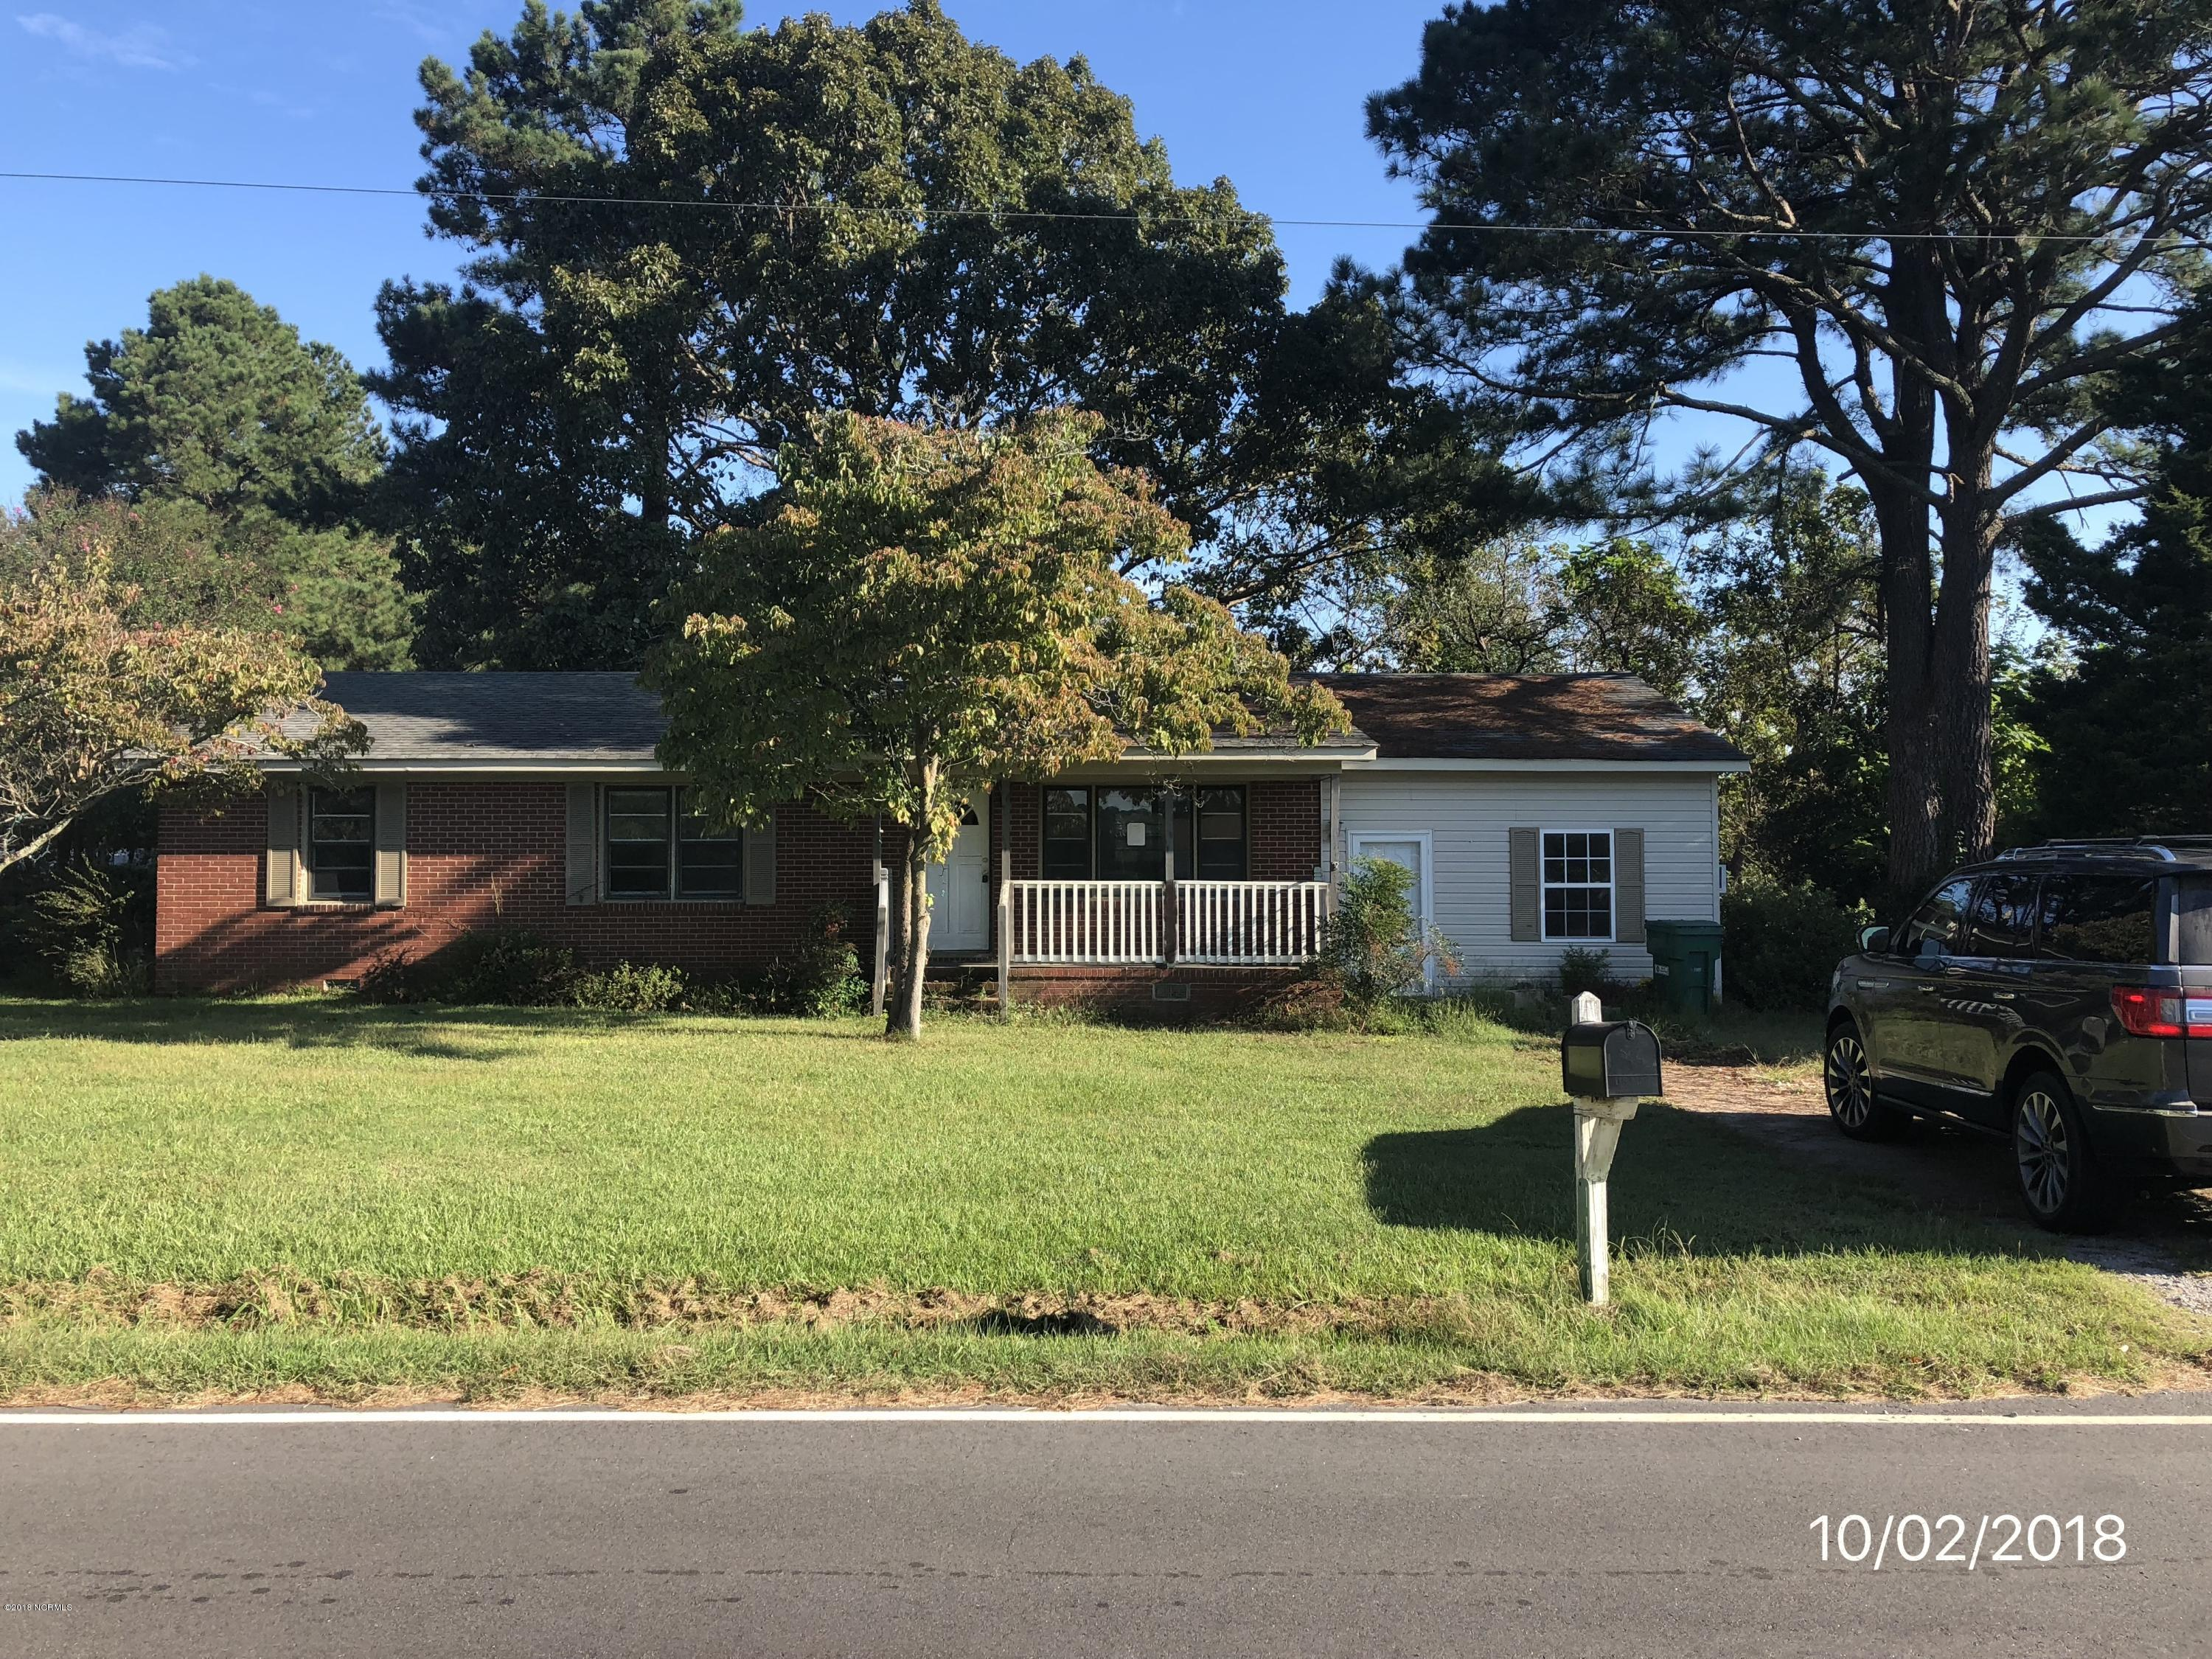 1129 Fort Branch Road, Oak City, North Carolina, 3 Bedrooms Bedrooms, 7 Rooms Rooms,1 BathroomBathrooms,Single family residence,For sale,Fort Branch,100142748